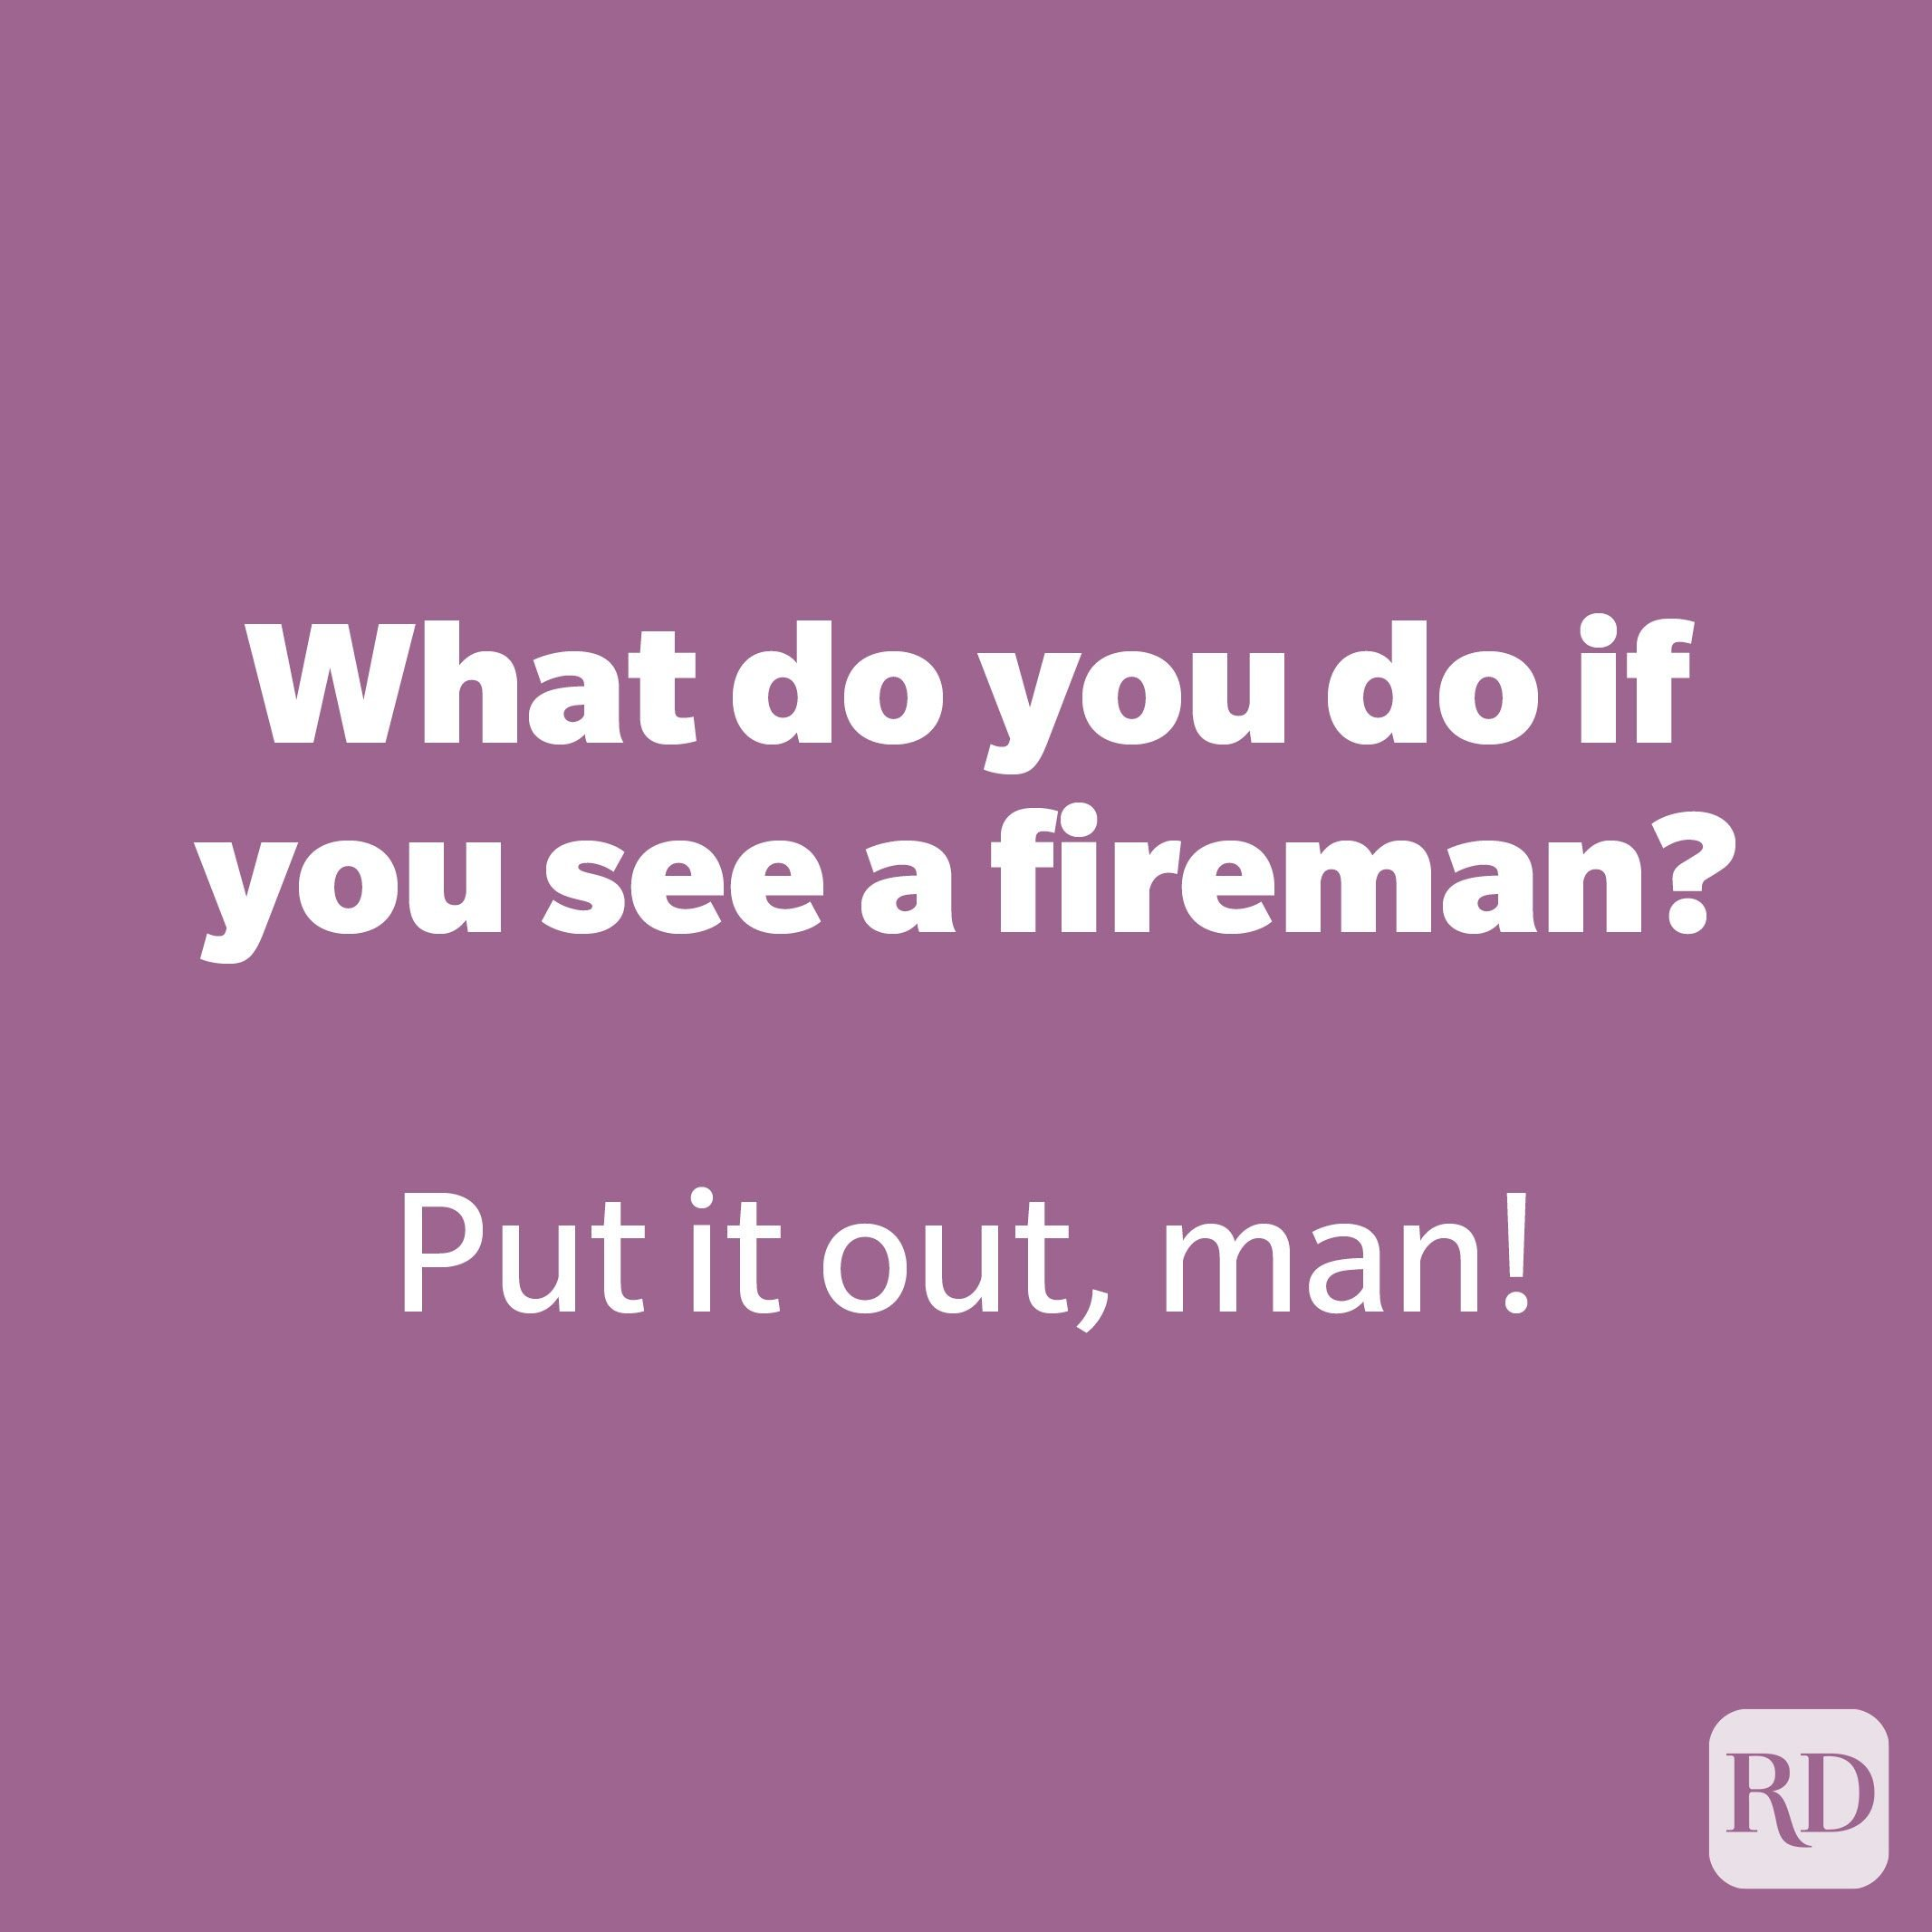 What do you do if you see a fireman?